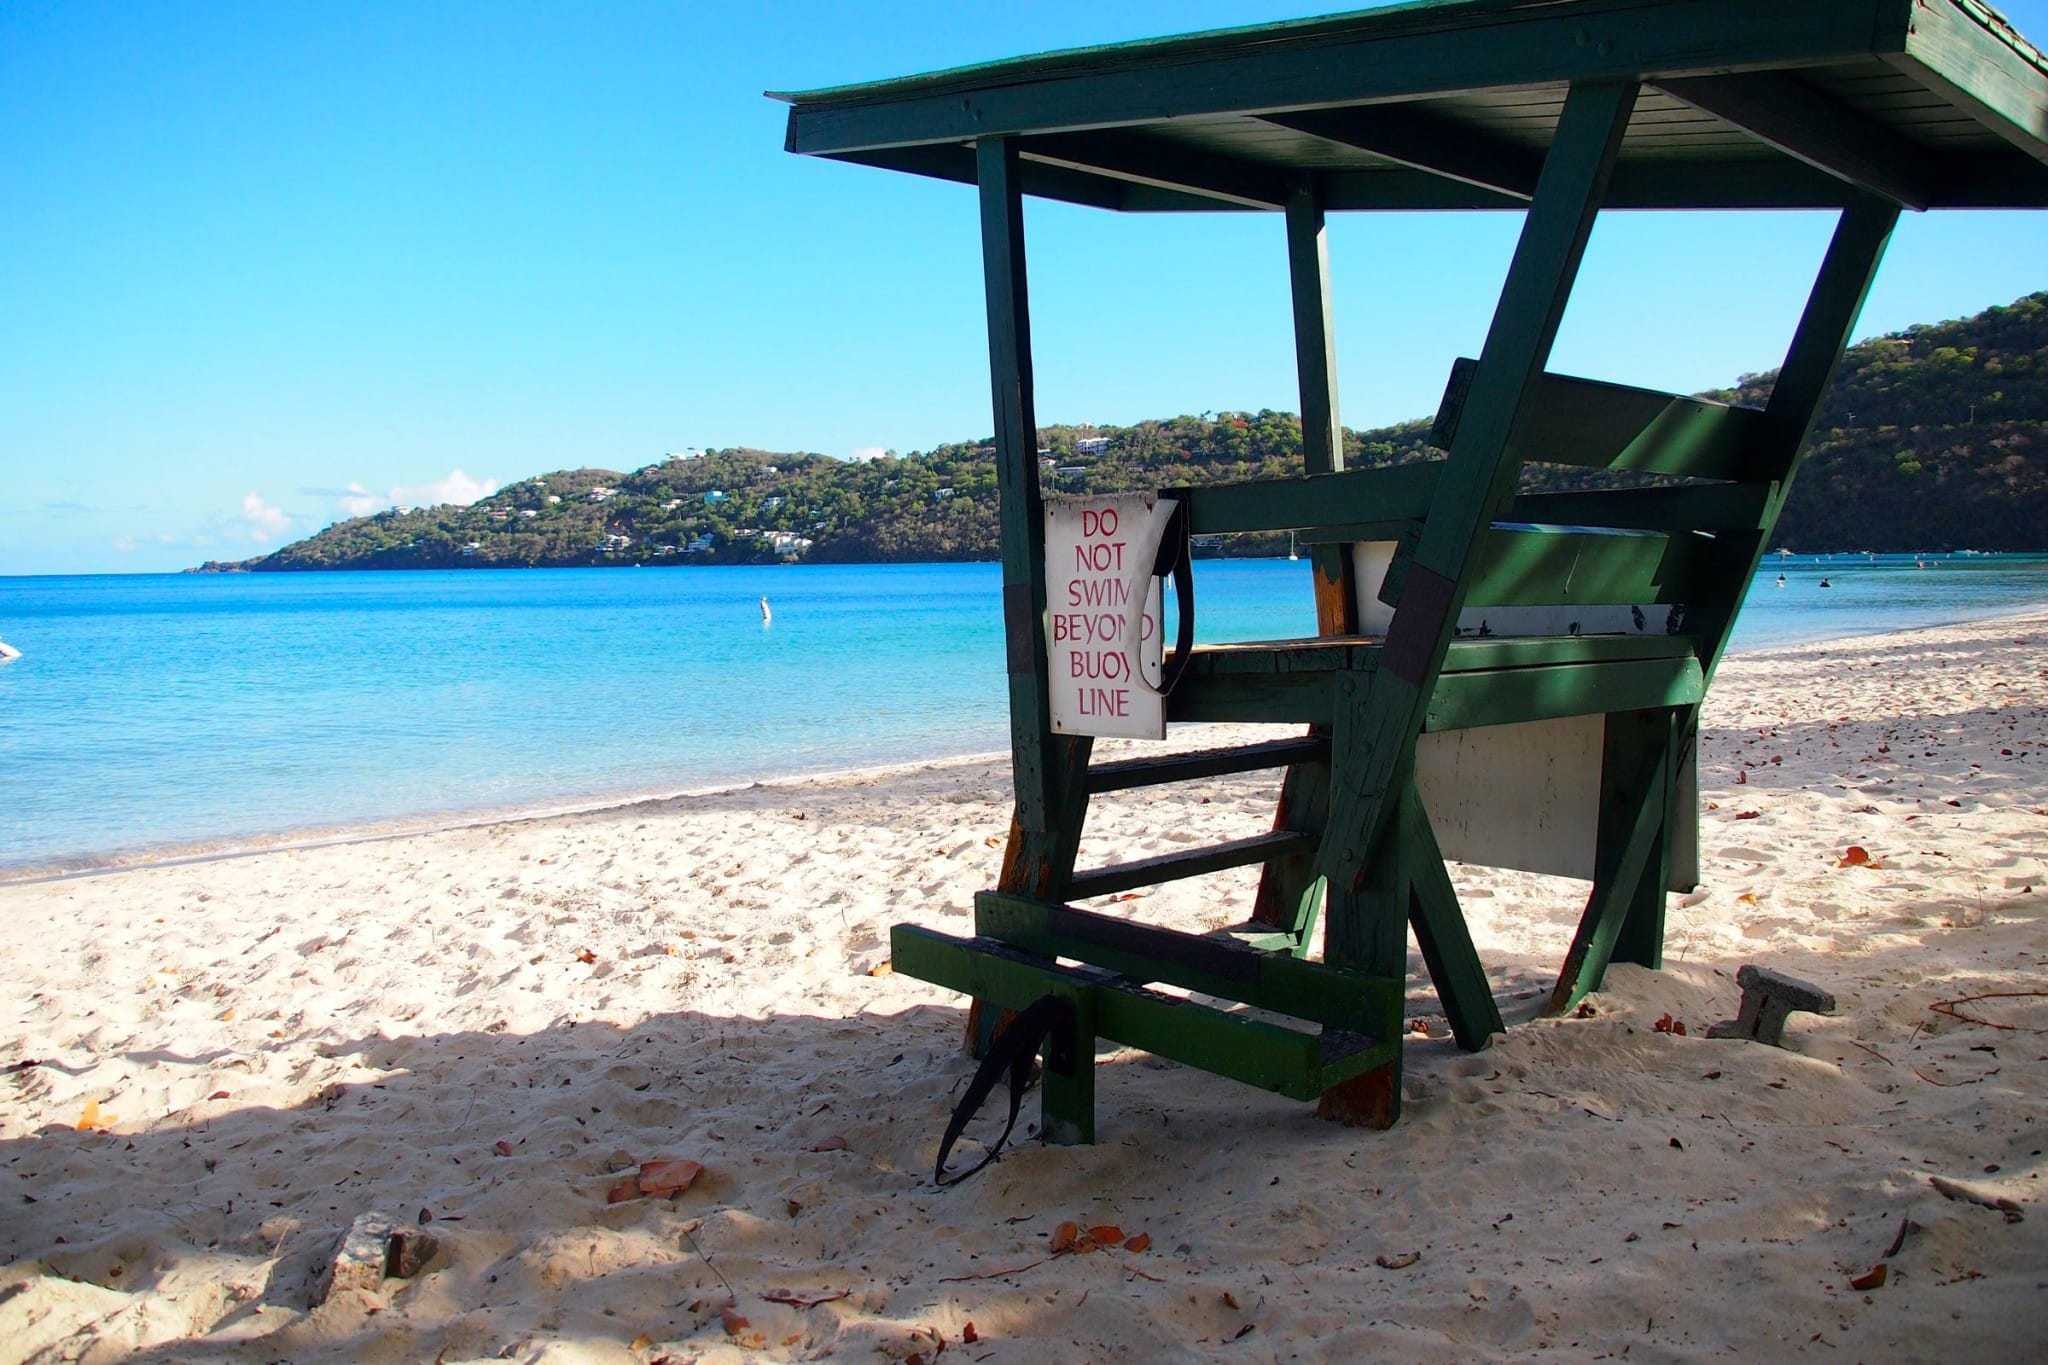 Ask Uncommon Caribbean: How Can I Get a Lifeguard Job on Magens Bay, St. Thomas?